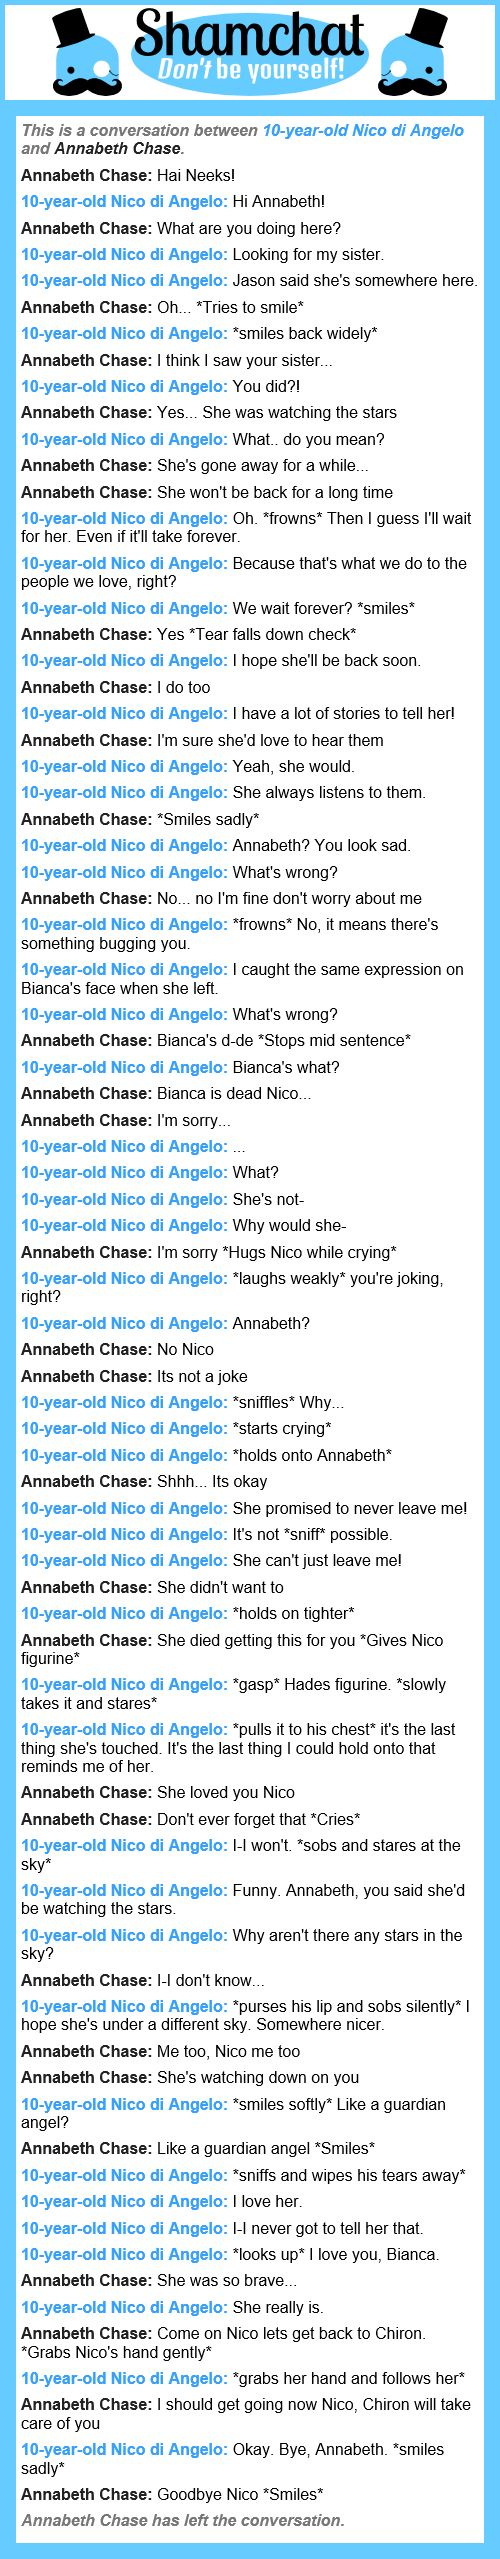 A conversation between Annabeth Chase and 10-year-old Nico di Angelo. This killed me too do, I was literally in tears. Whoever you are thank you :)